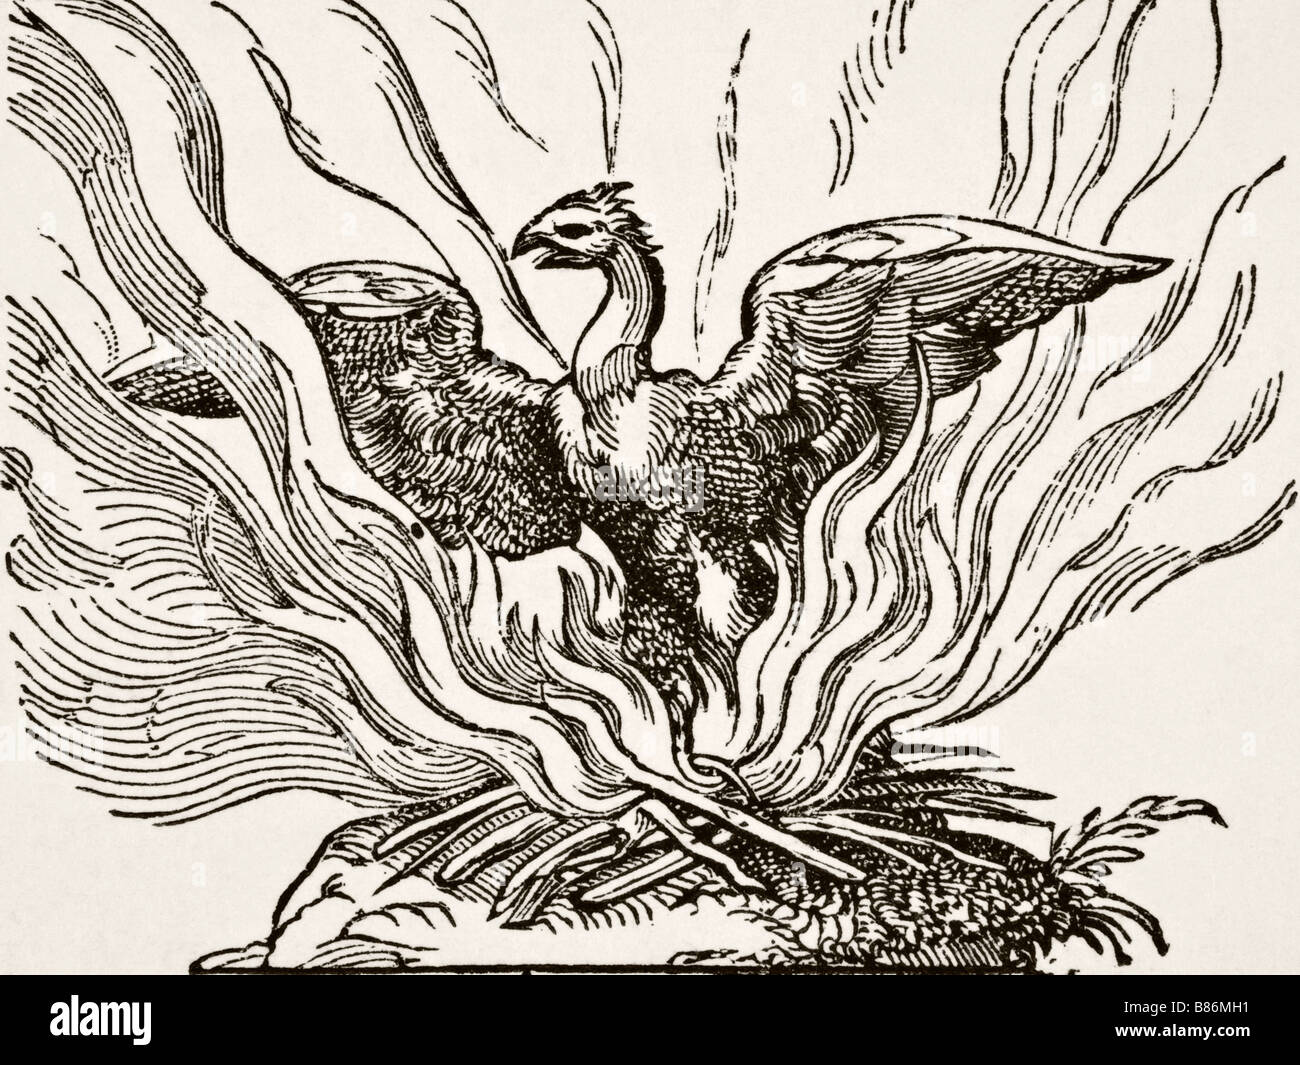 The Phoenix Rising From His Ashes Stock Photo 22275485 Alamy